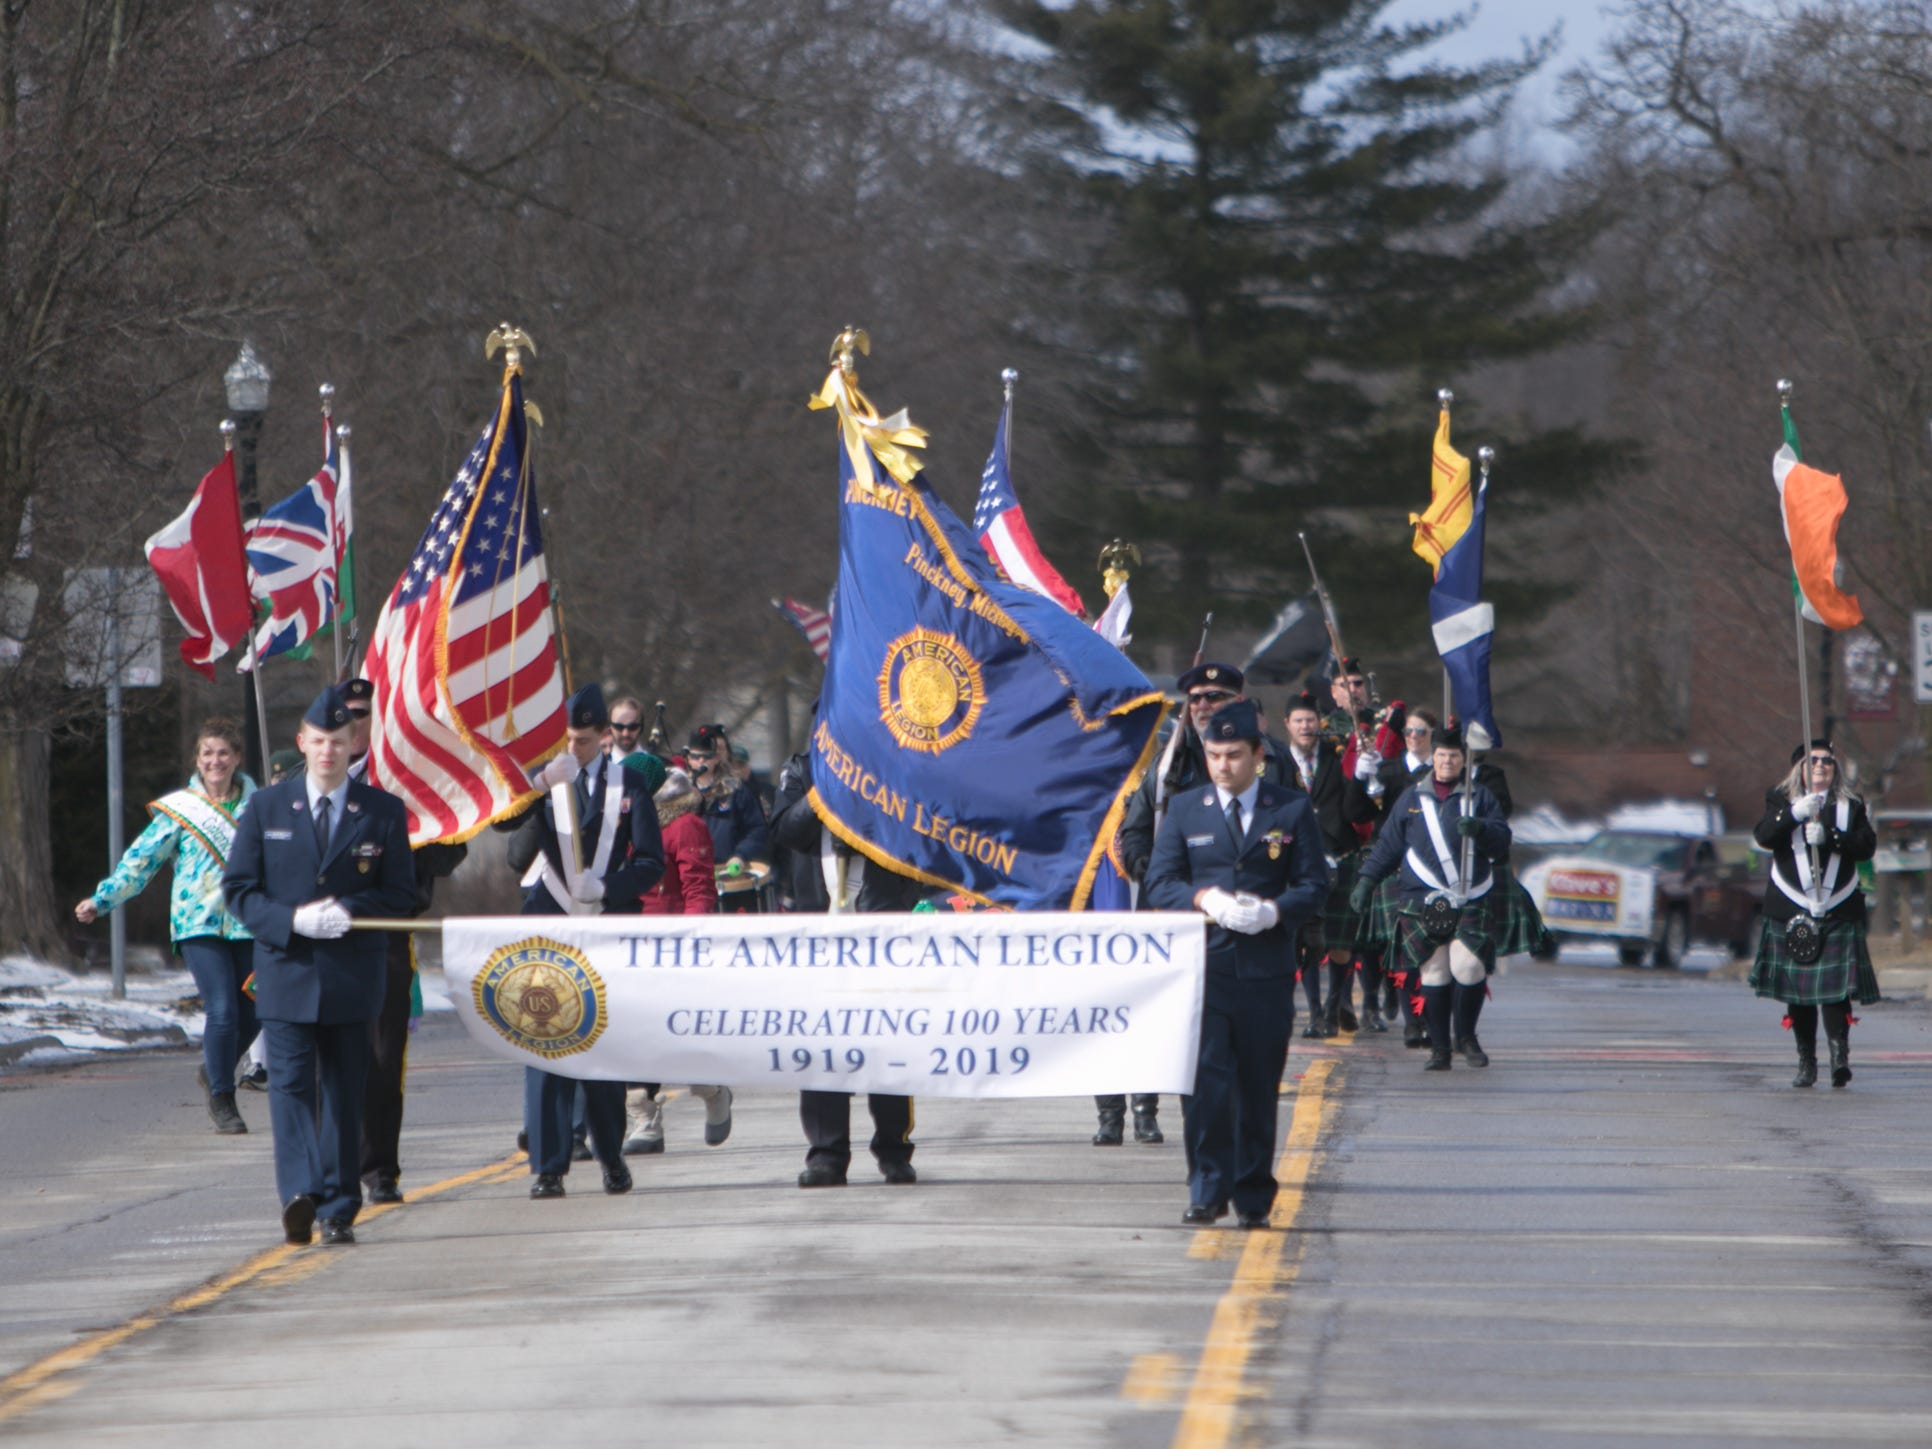 The American Legion Post 419 leads the Pinckney St. Patrick's Day parade Saturday, March 16, 2019.